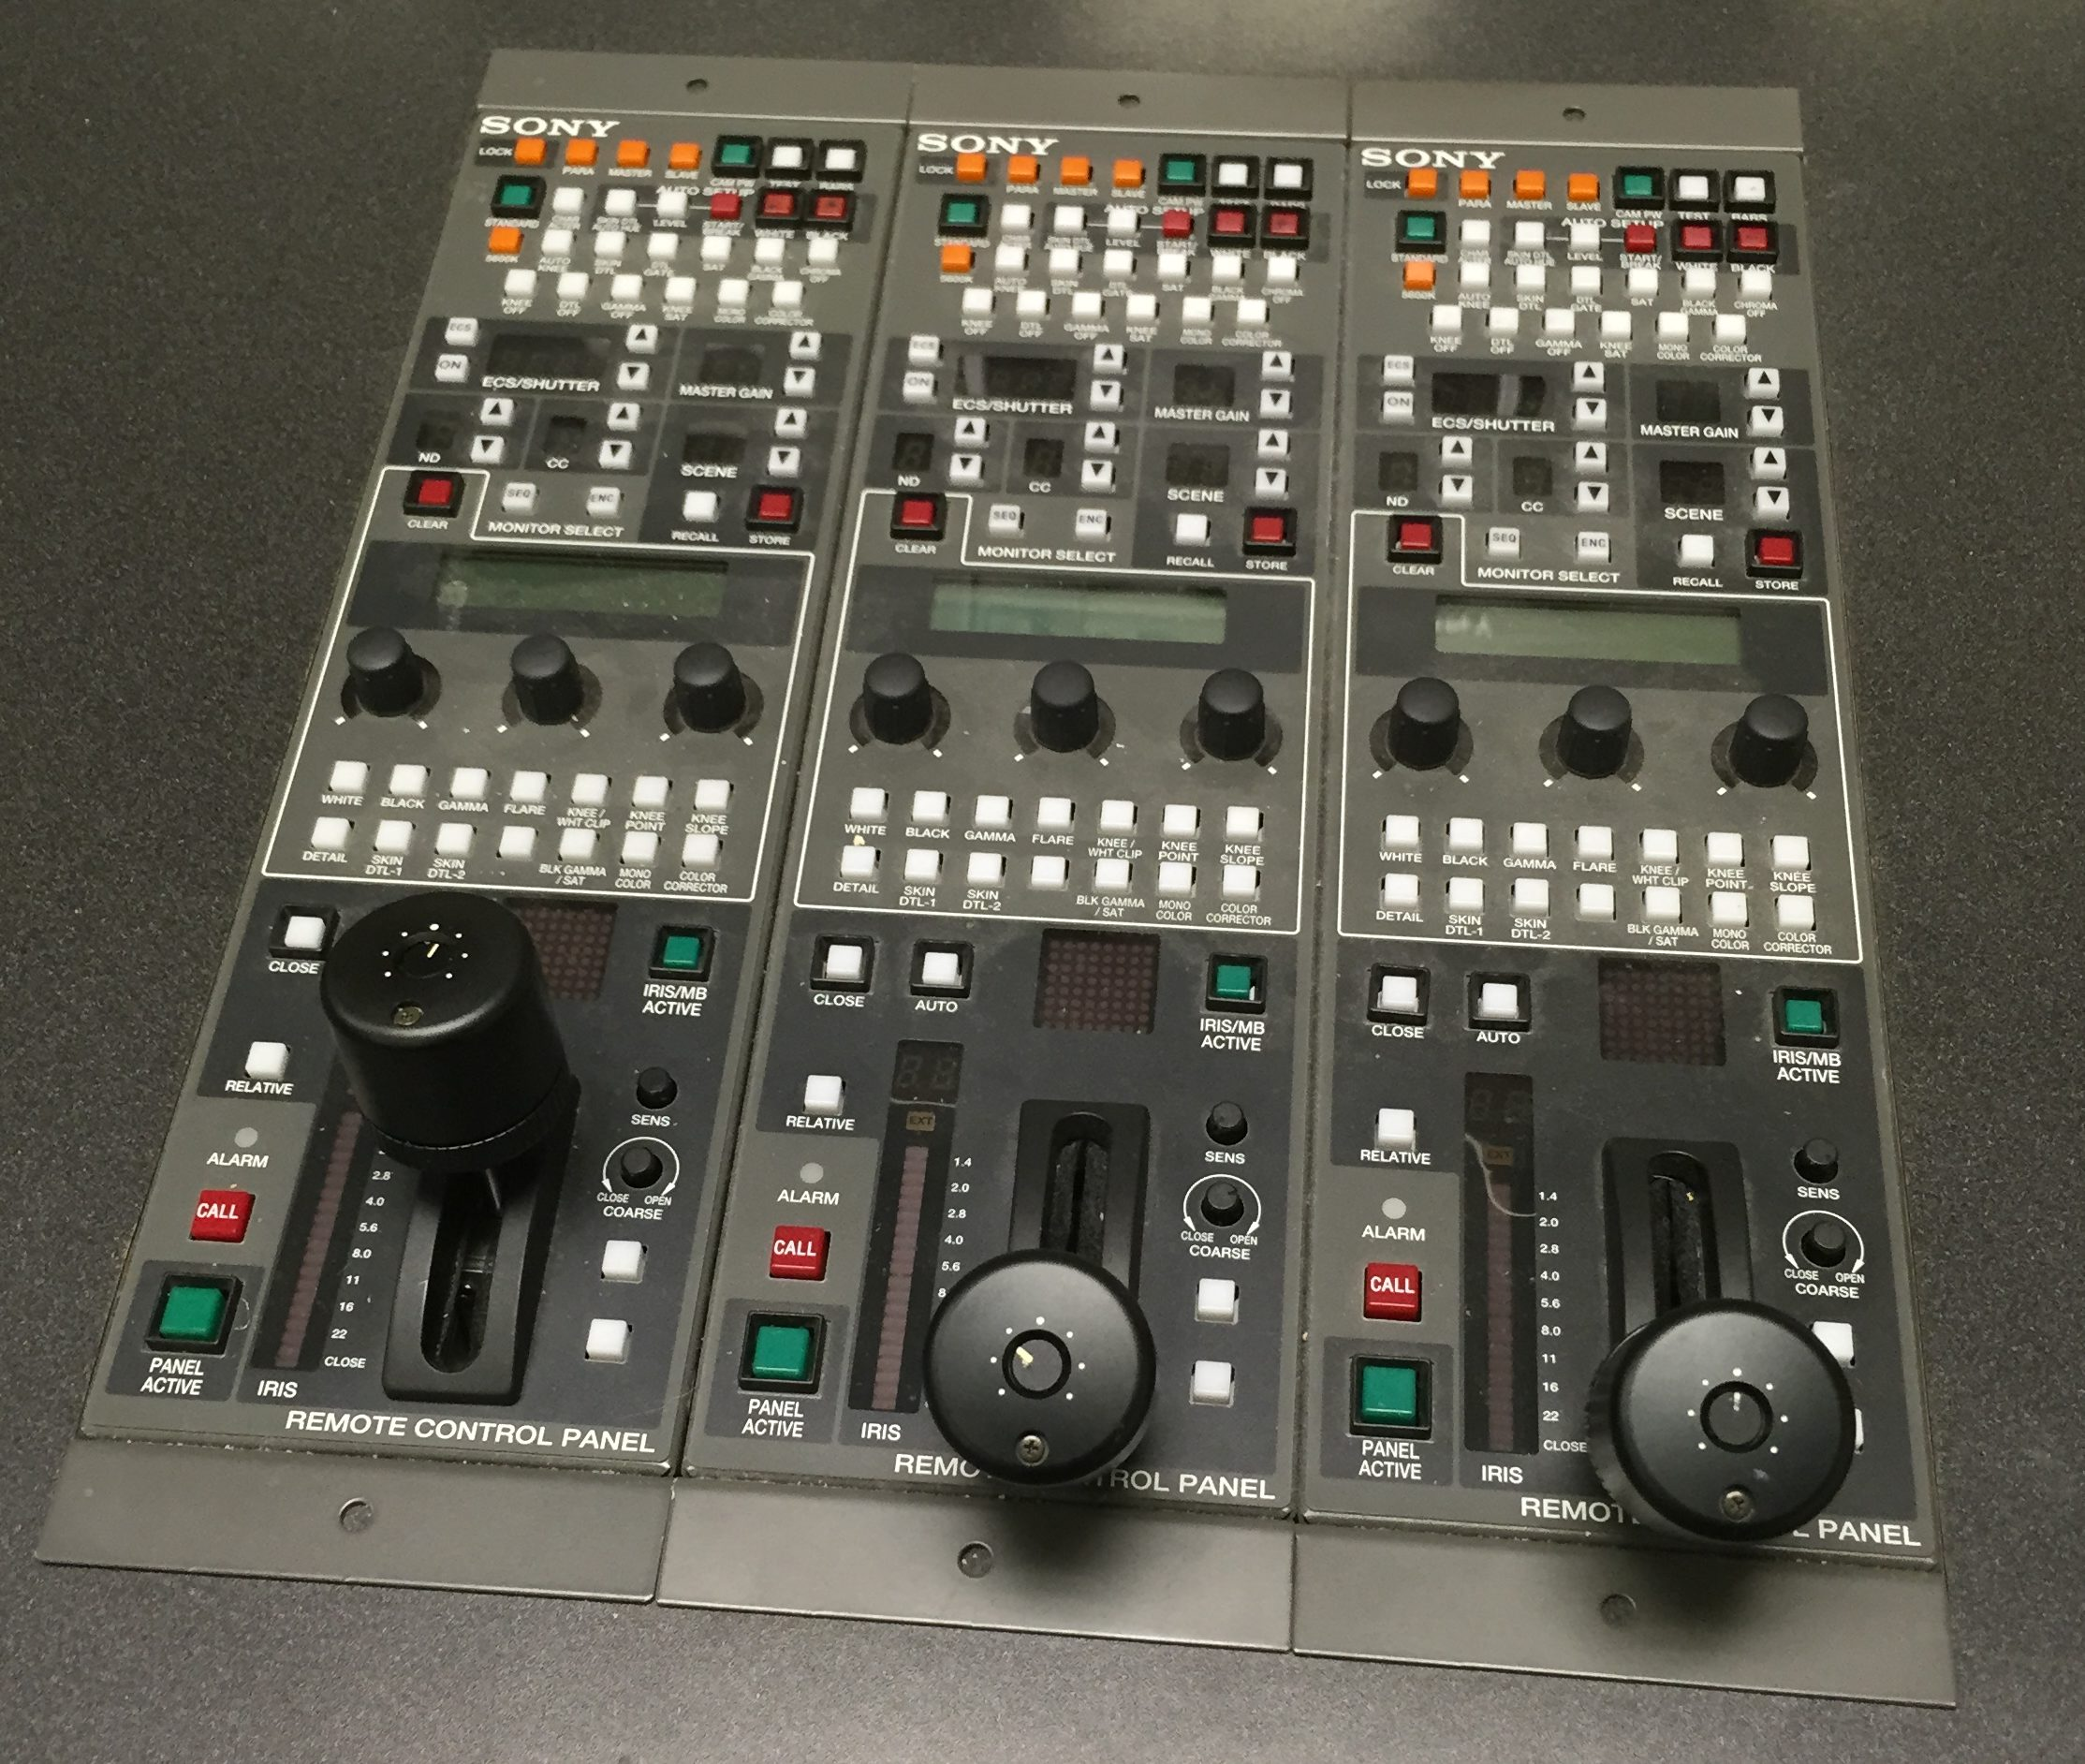 Sony BVP-570 Operations Panels in Shading area